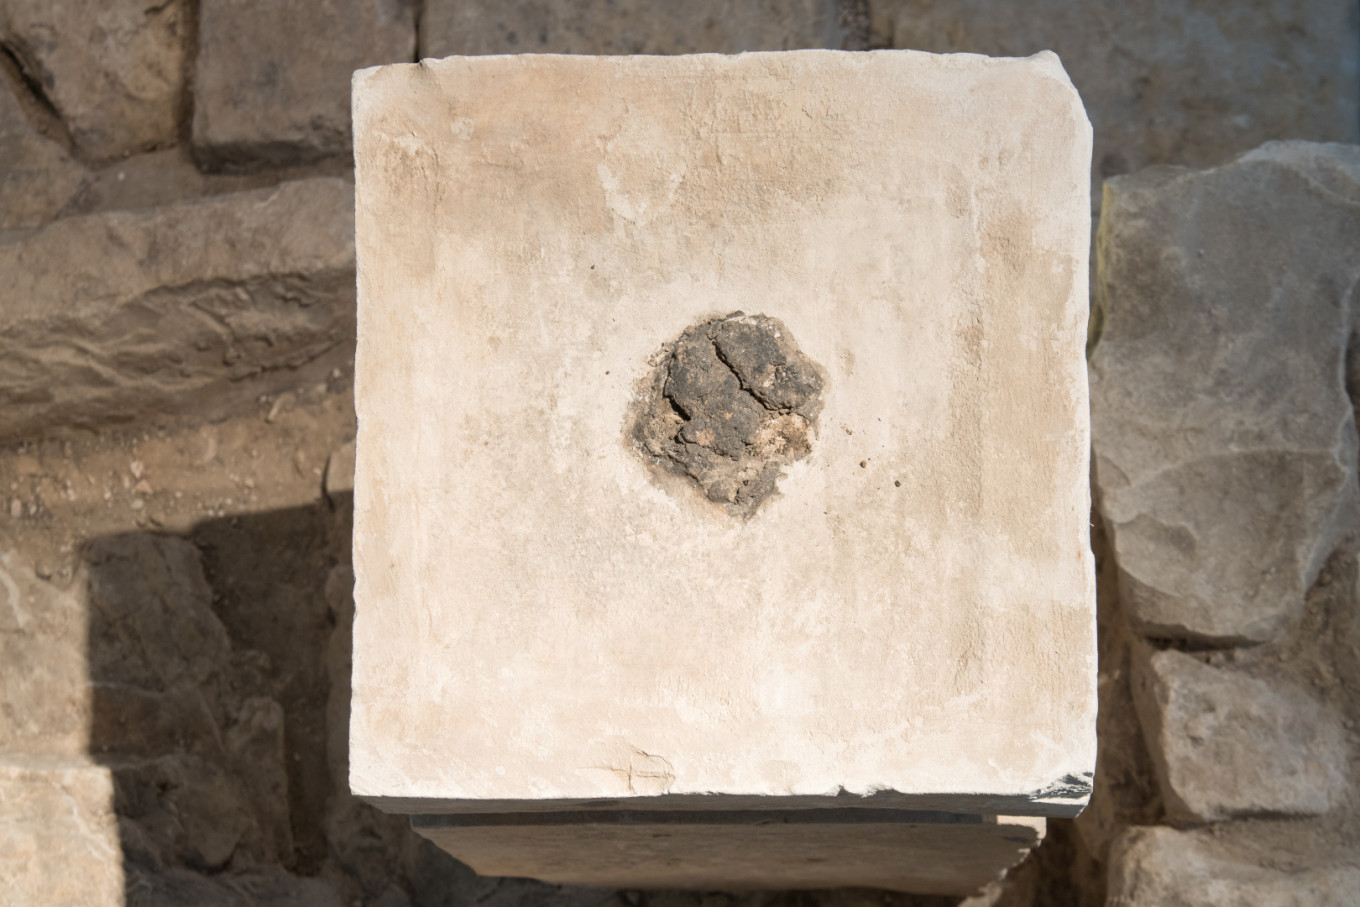 Holy smoke, researchers say cannabis used in ancient Israelite shrine